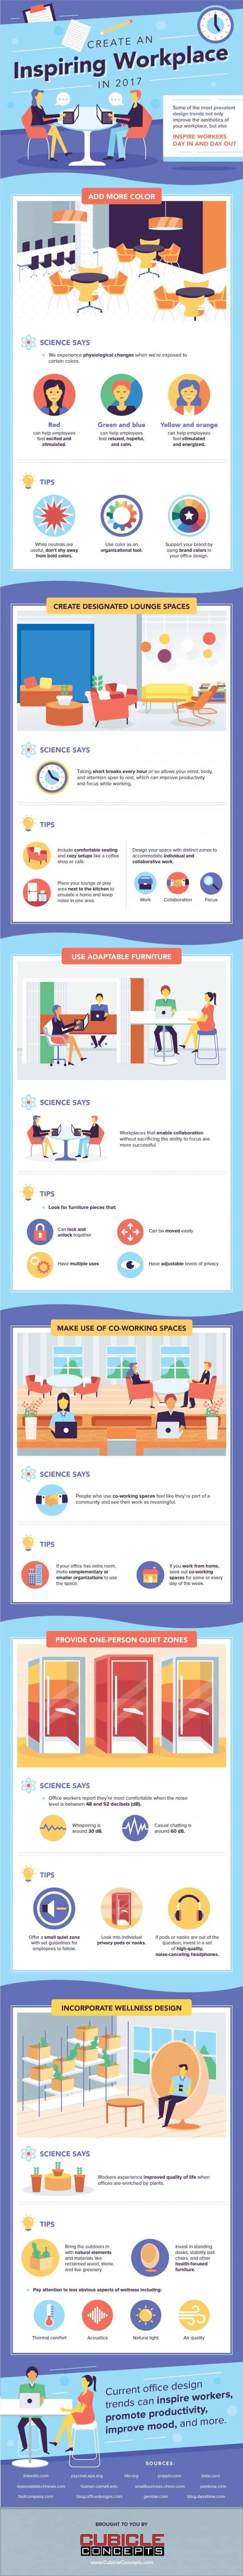 infographic with tips for getting inspired in your workplace